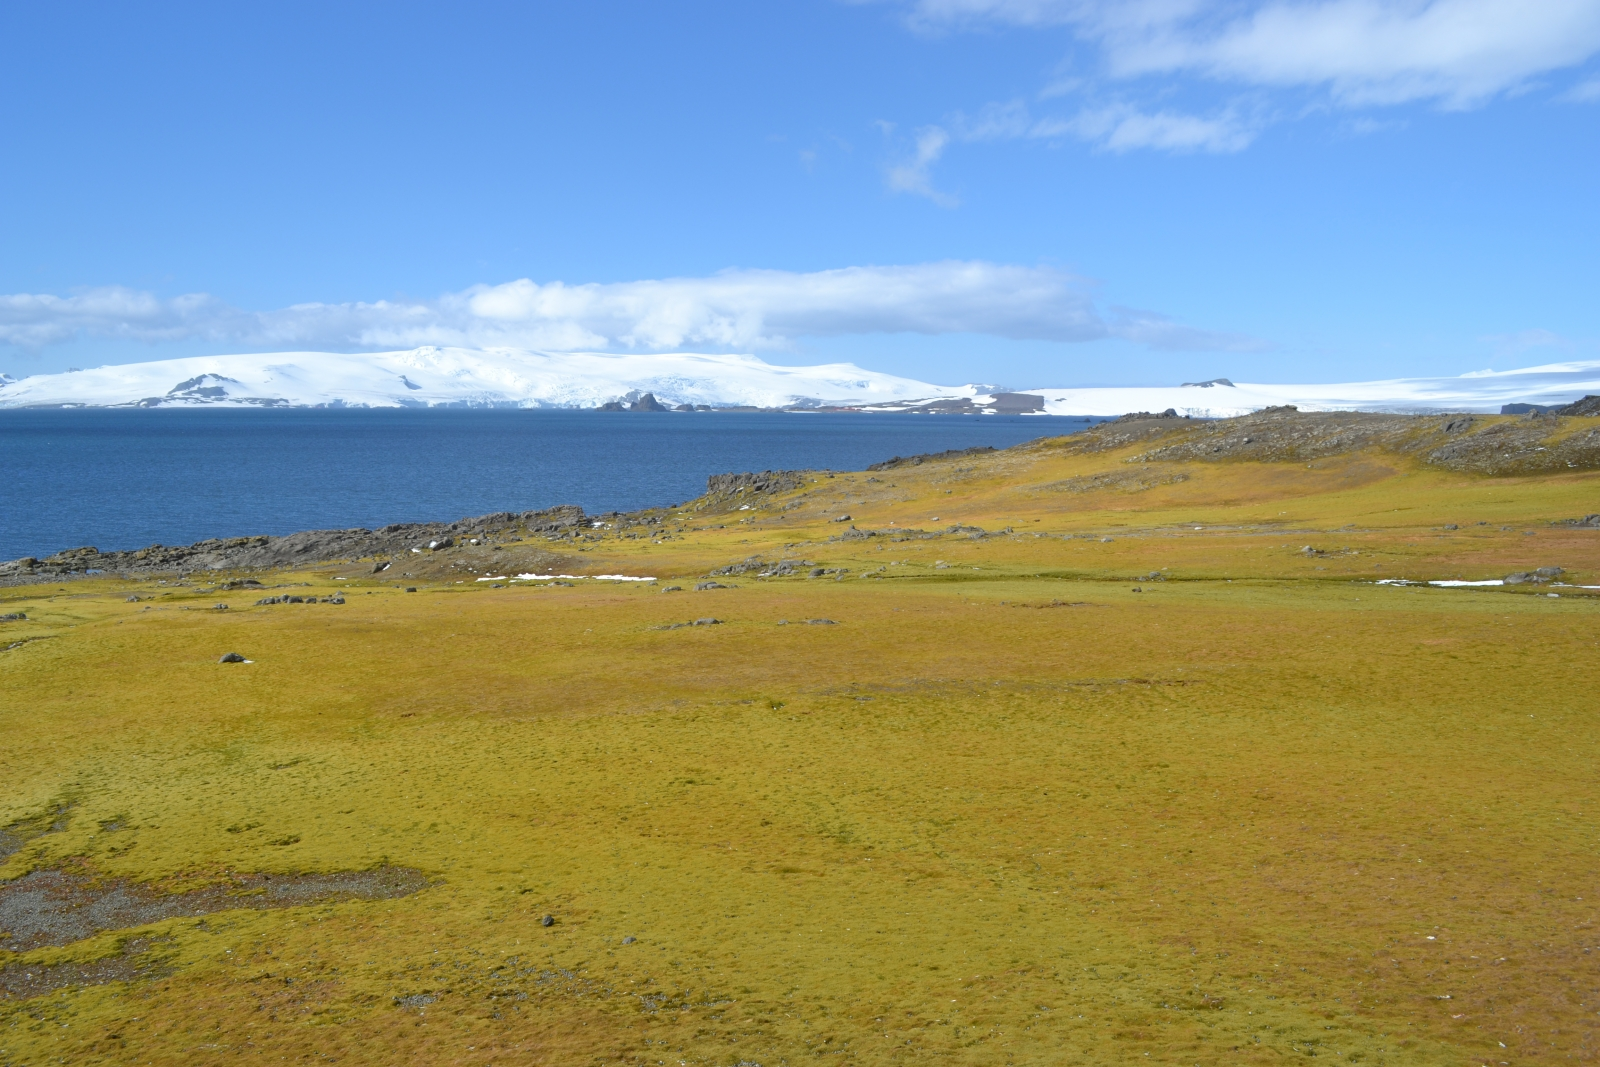 Antarctica experiencing rapid plant growth due to climate change